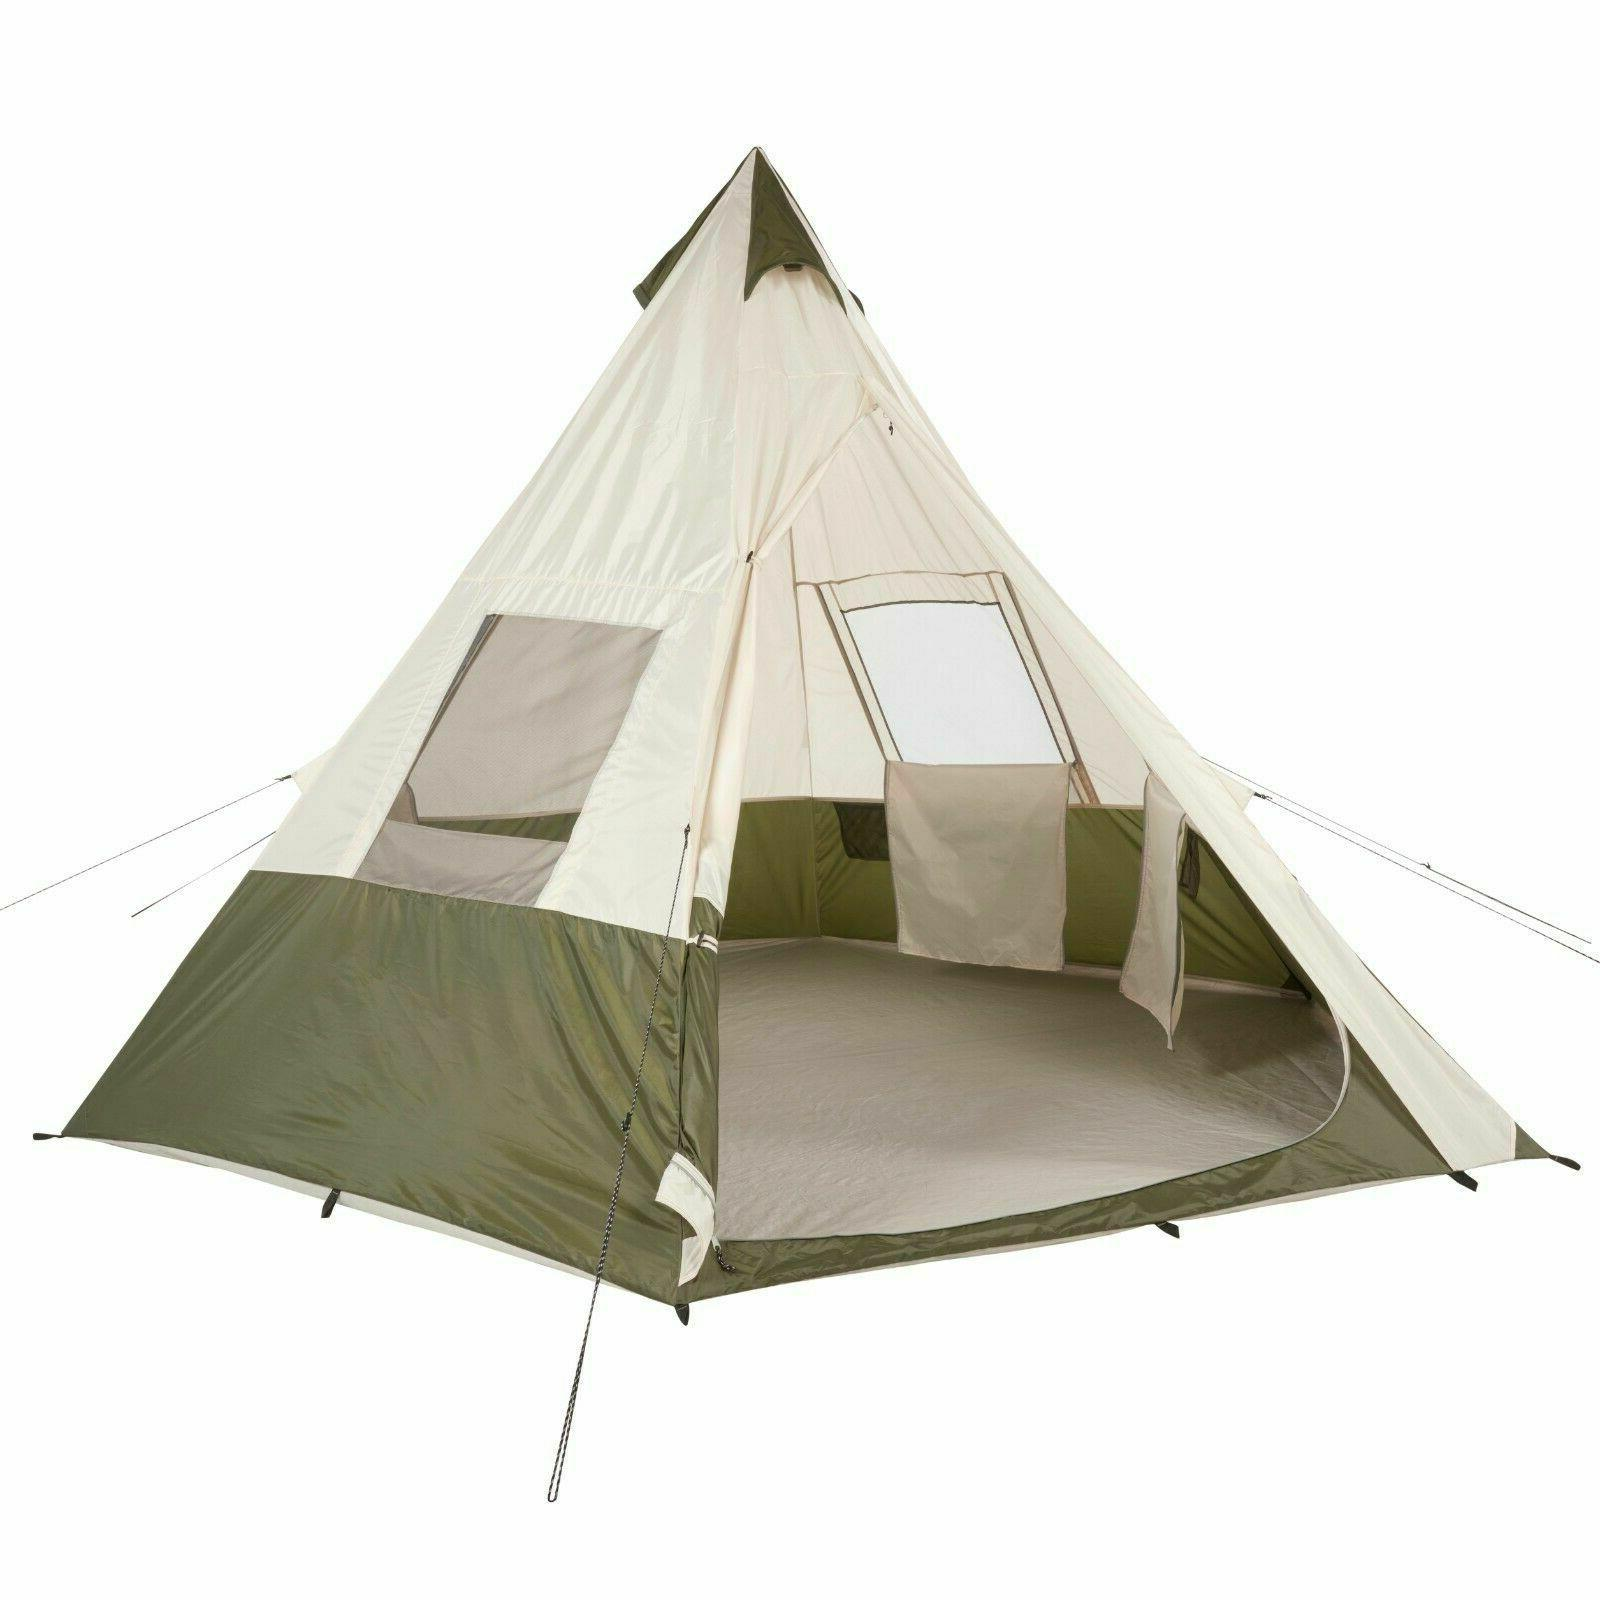 7 person teepee tent sleeping outdoor family